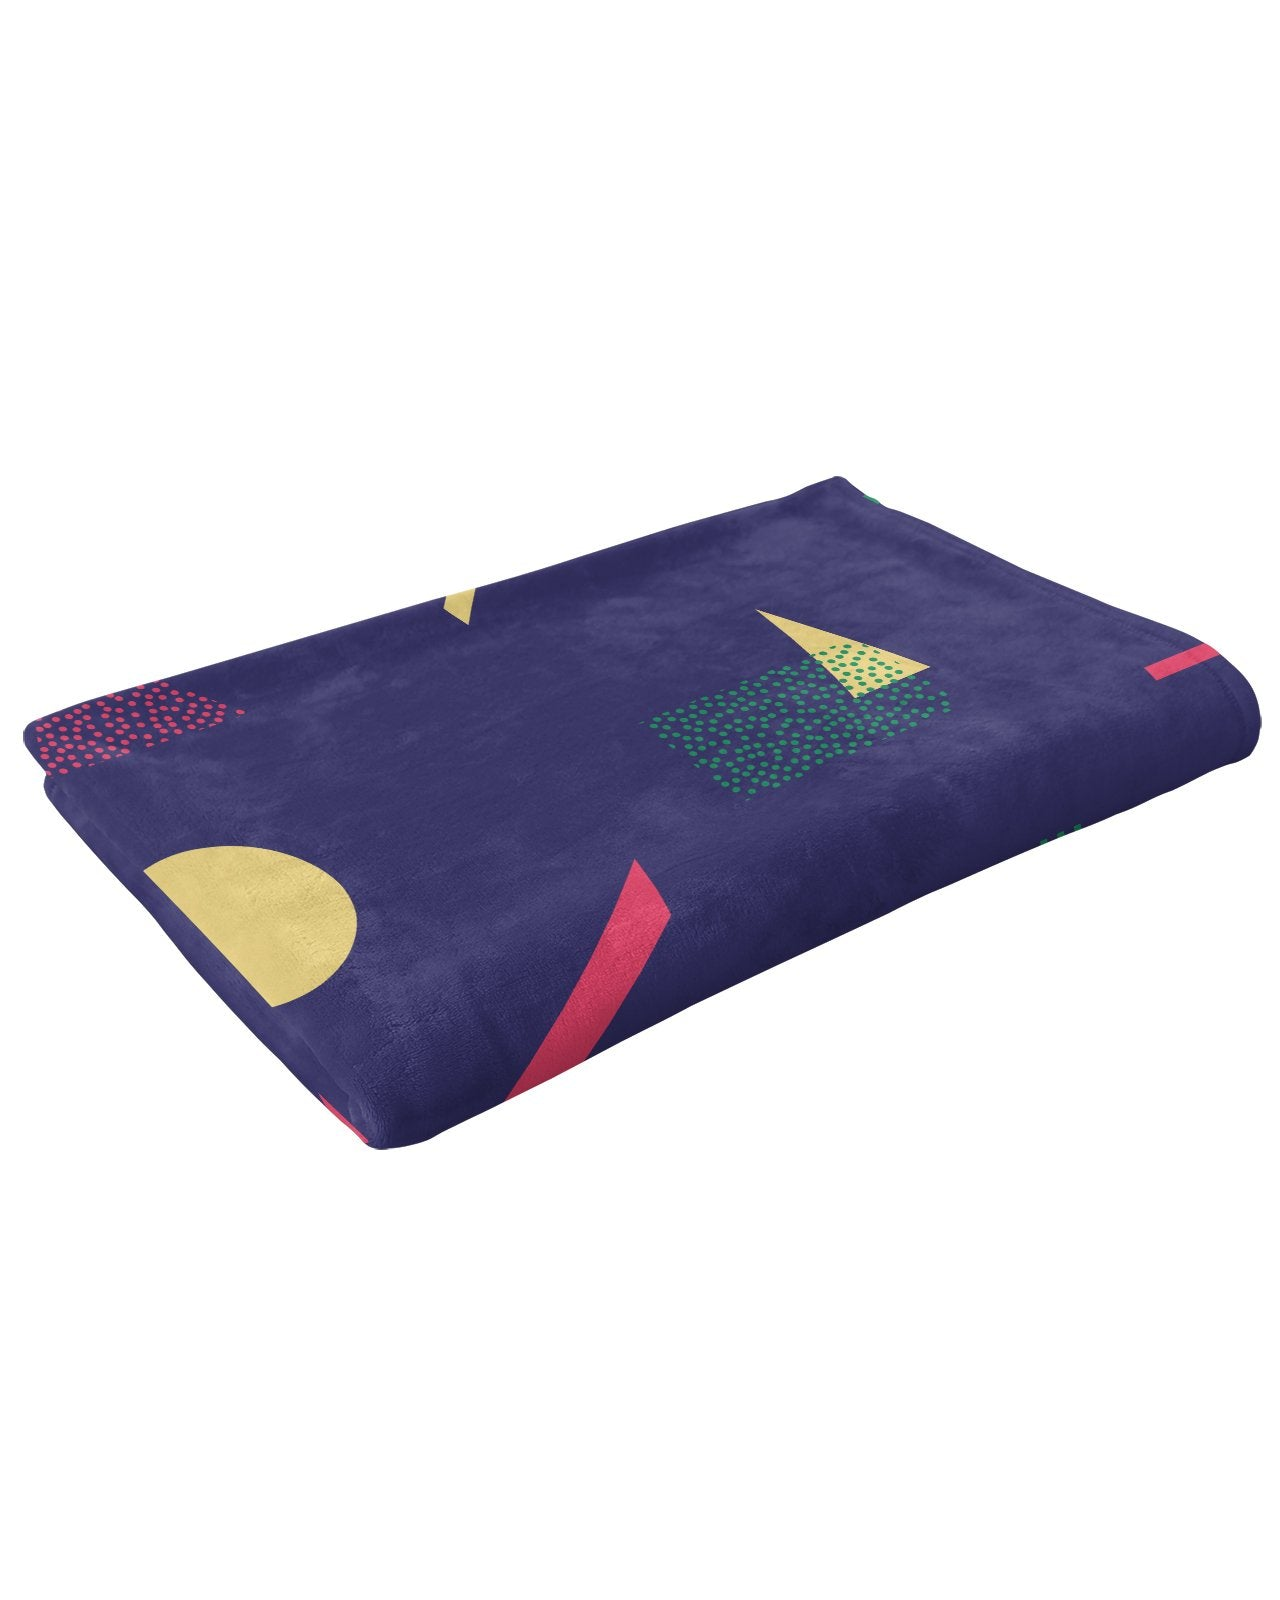 Retro Dojo Geometric Metrics Fluffy Micro Fleece Throw Blanket